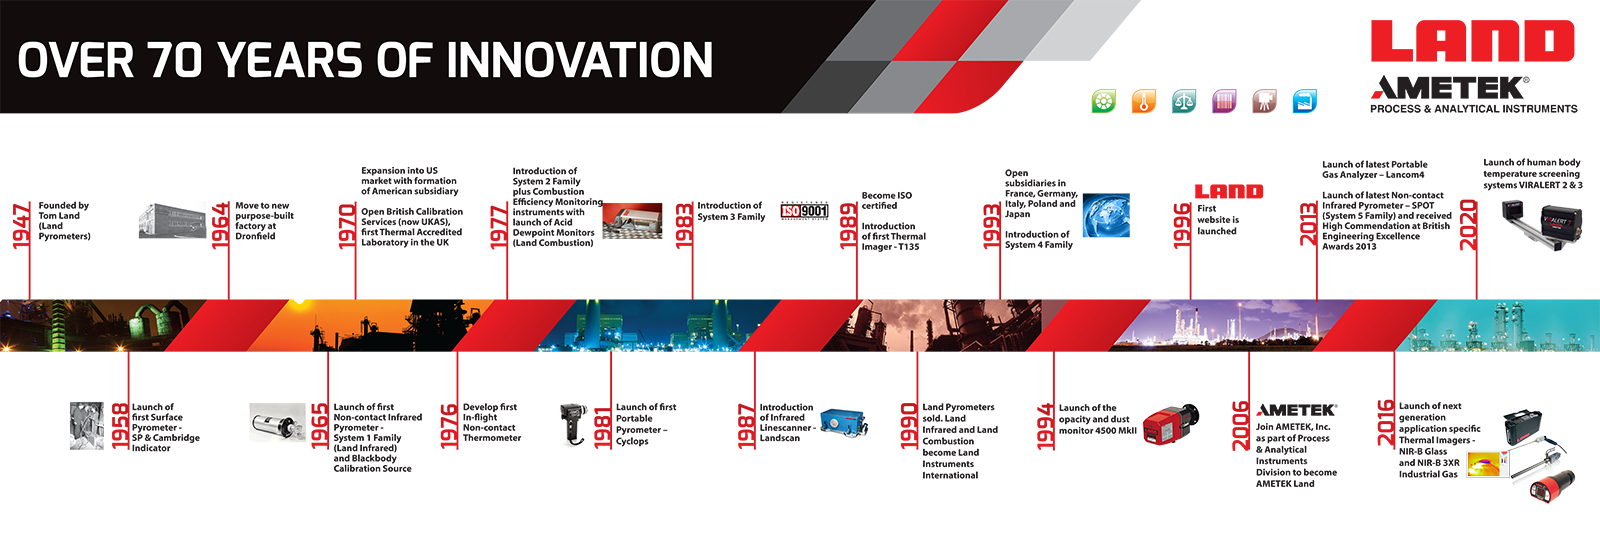 AMETEK LAND AND 70 YEARS OF INNOVATION